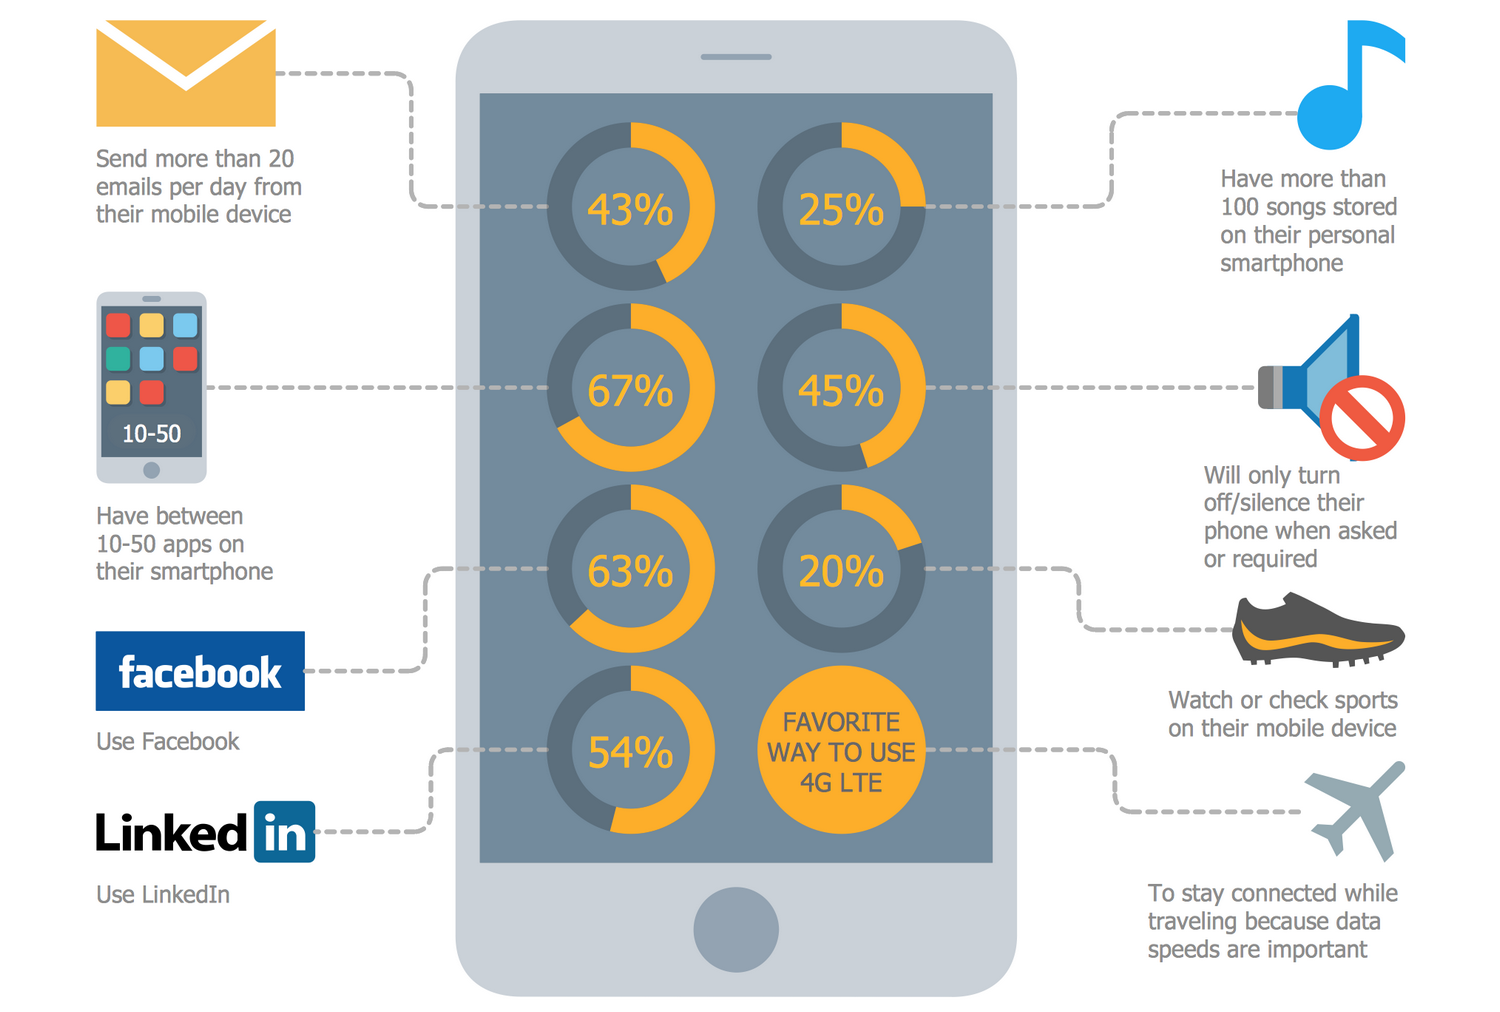 IIllustration Audio,Video,Media Example - How Business Executives Use Their Mobile Devices